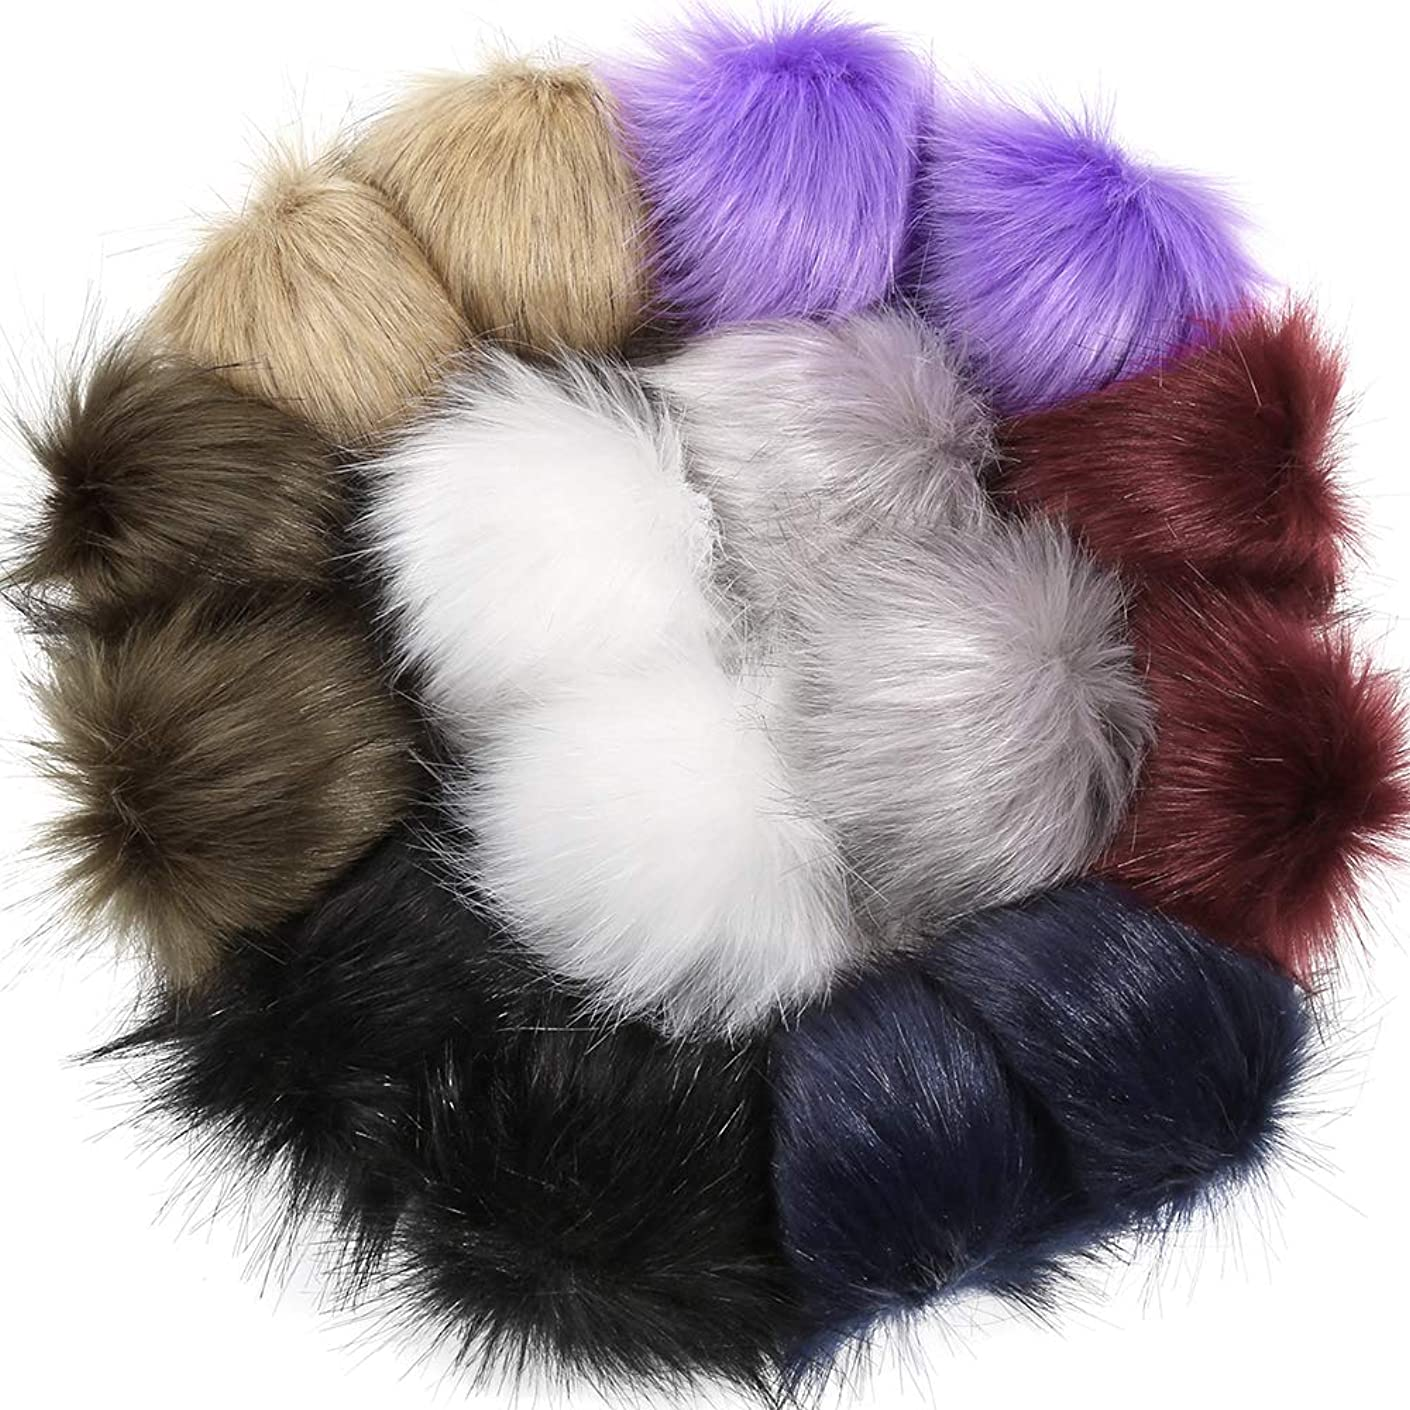 Auihiay Faux Fur Pom Pom Ball DIY Fur Pompoms with Sewing Buttons for Hats Shoes Scarves Bag Keychain Charms Knitting Hat Accessories (16 Pieces, 8 Mix Colors)